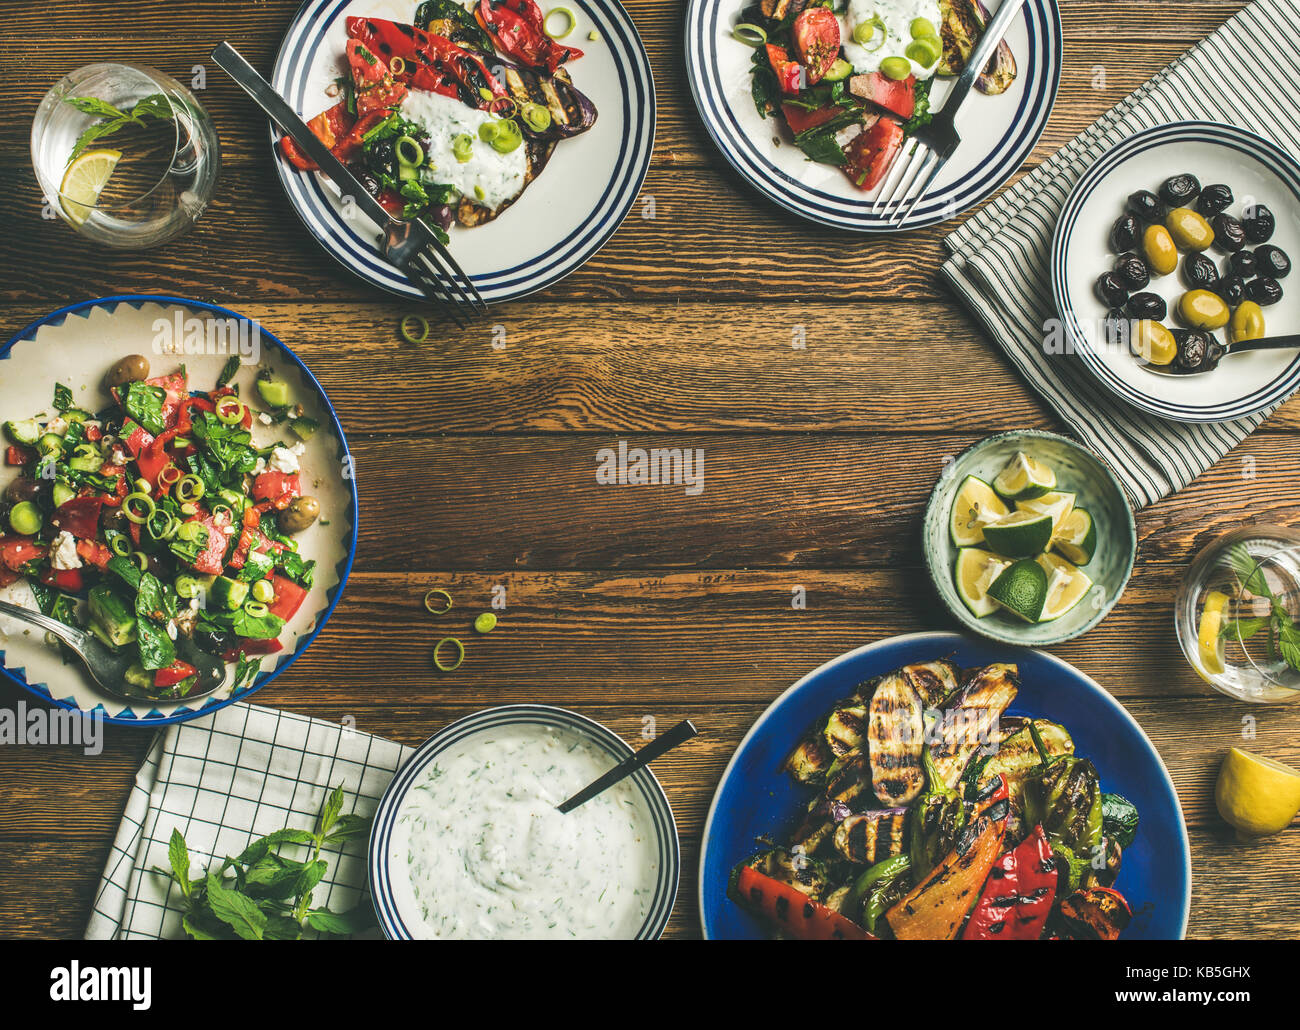 Flat-lay of healthy dinner table setting with vegetarian appetizers Stock Photo